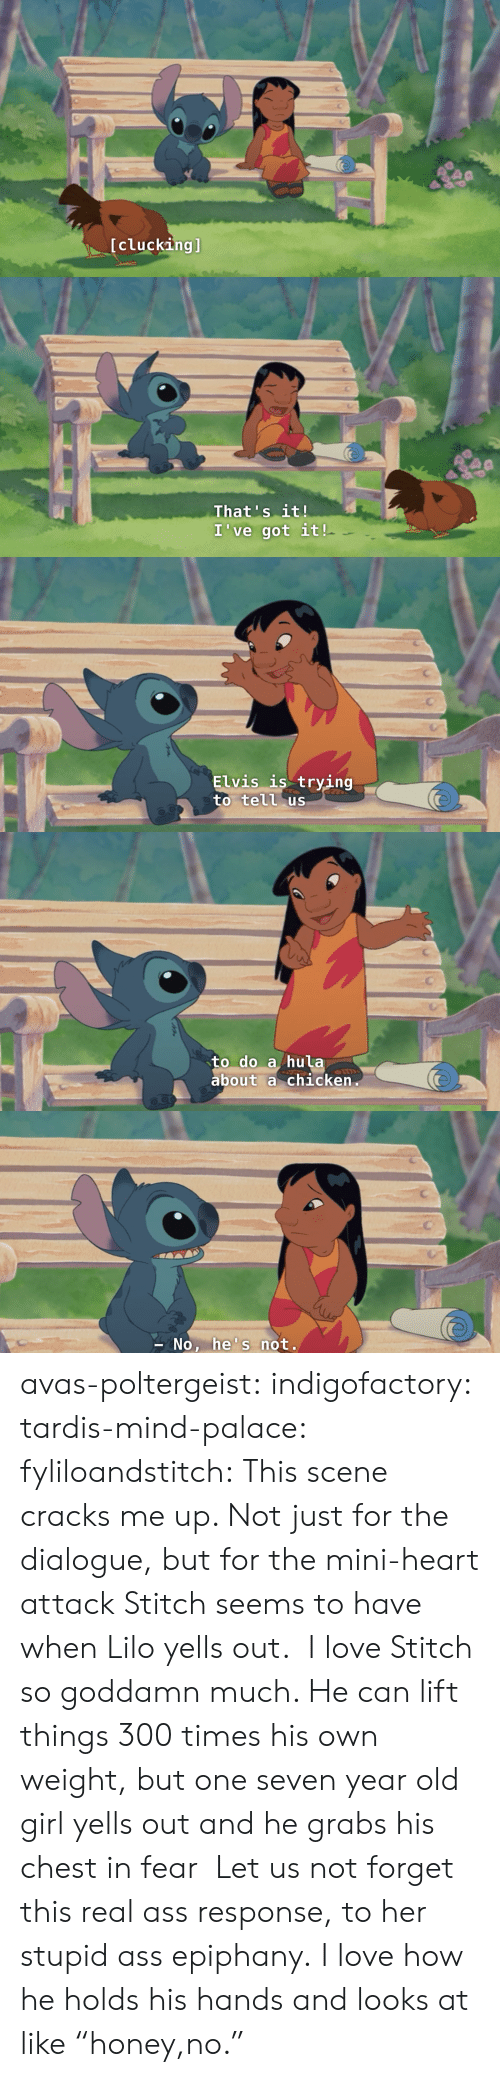 """Tardis: [clucking]   That's it!  I've got it!   Elvis is trying  to tell us   to do a hula  about a chicken   No, he's not. avas-poltergeist: indigofactory:  tardis-mind-palace:  fyliloandstitch:  This scene cracks me up. Not just for the dialogue, but for the mini-heart attack Stitch seems to have when Lilo yells out.  I love Stitch so goddamn much. He can lift things 300 times his own weight, but one seven year old girl yells out and he grabs his chest in fear  Let us not forget this real ass response, to her stupid ass epiphany.  I love how he holds his hands and looks at like """"honey,no."""""""